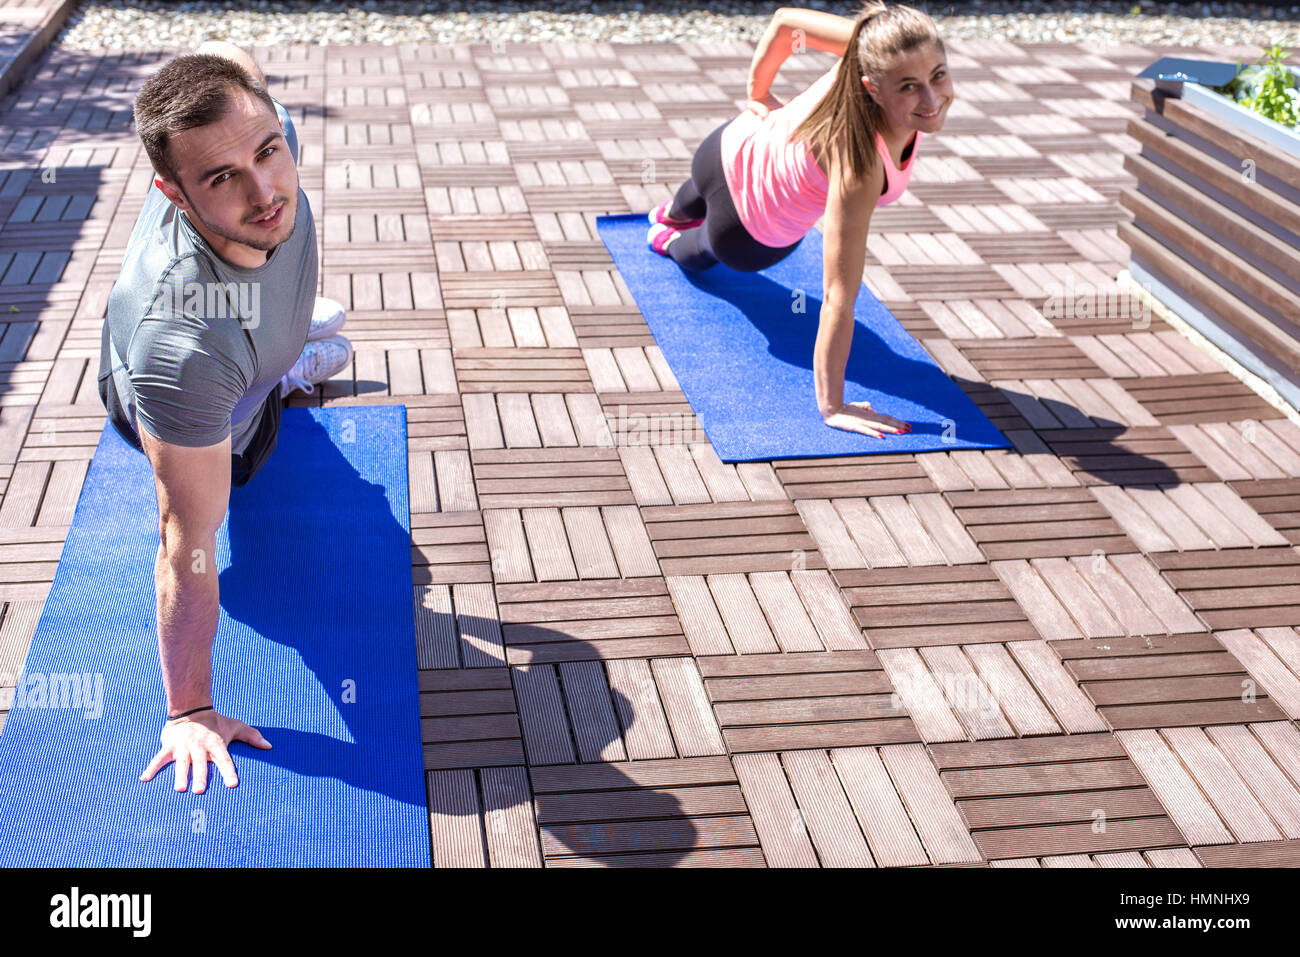 Young couple doing together side plank exercise on the rooftop, outdoors. Stock Photo